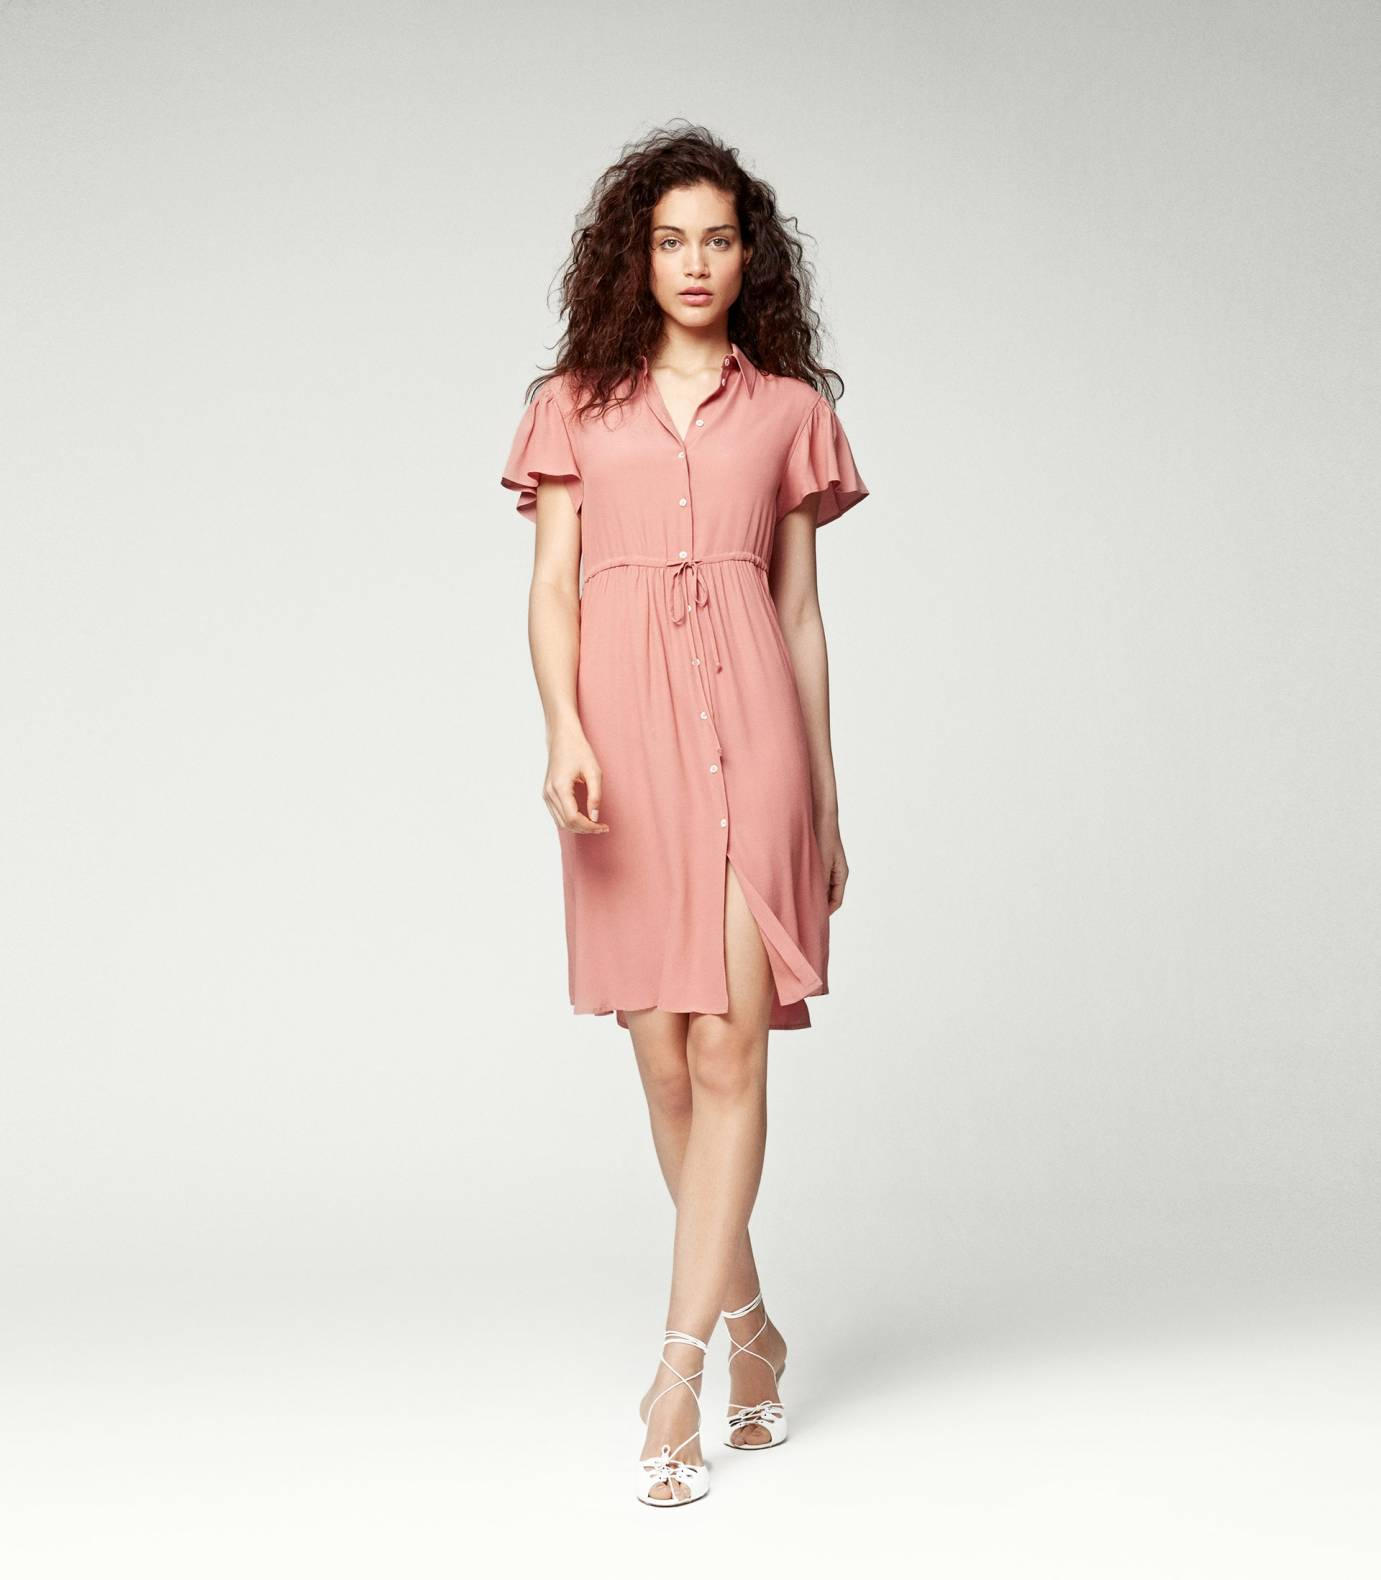 Crepe Viscose Short Sleeved Dress